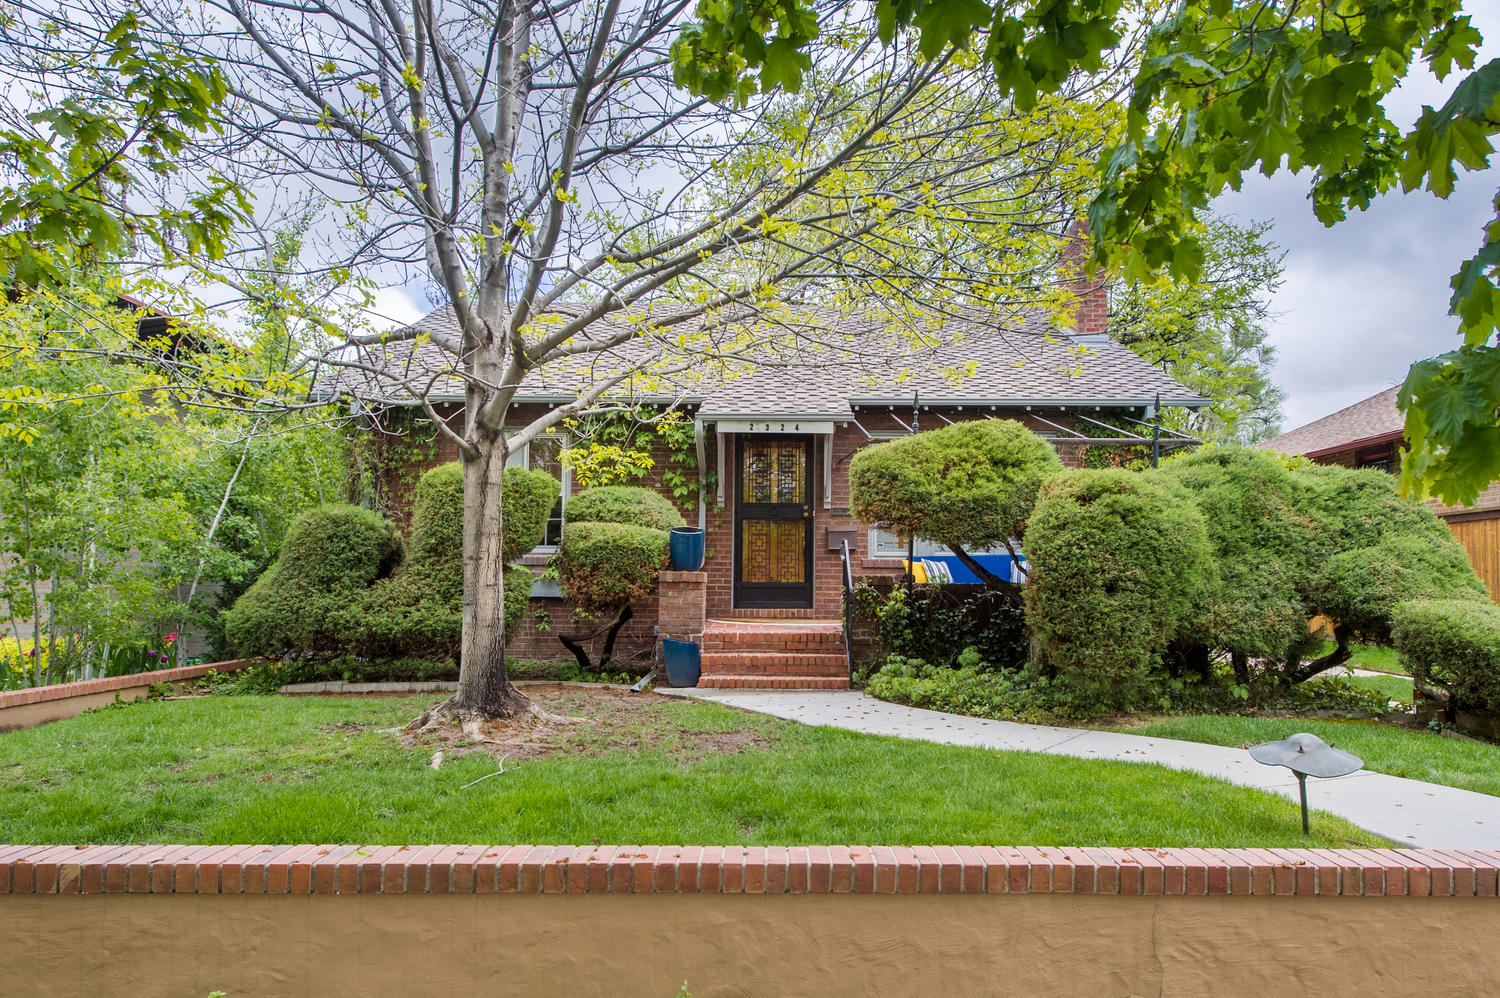 Single Family Home for Sale at Craftsman-era Bungalow in Park Hill 2324 Grape Street Denver, Colorado, 80207 United States